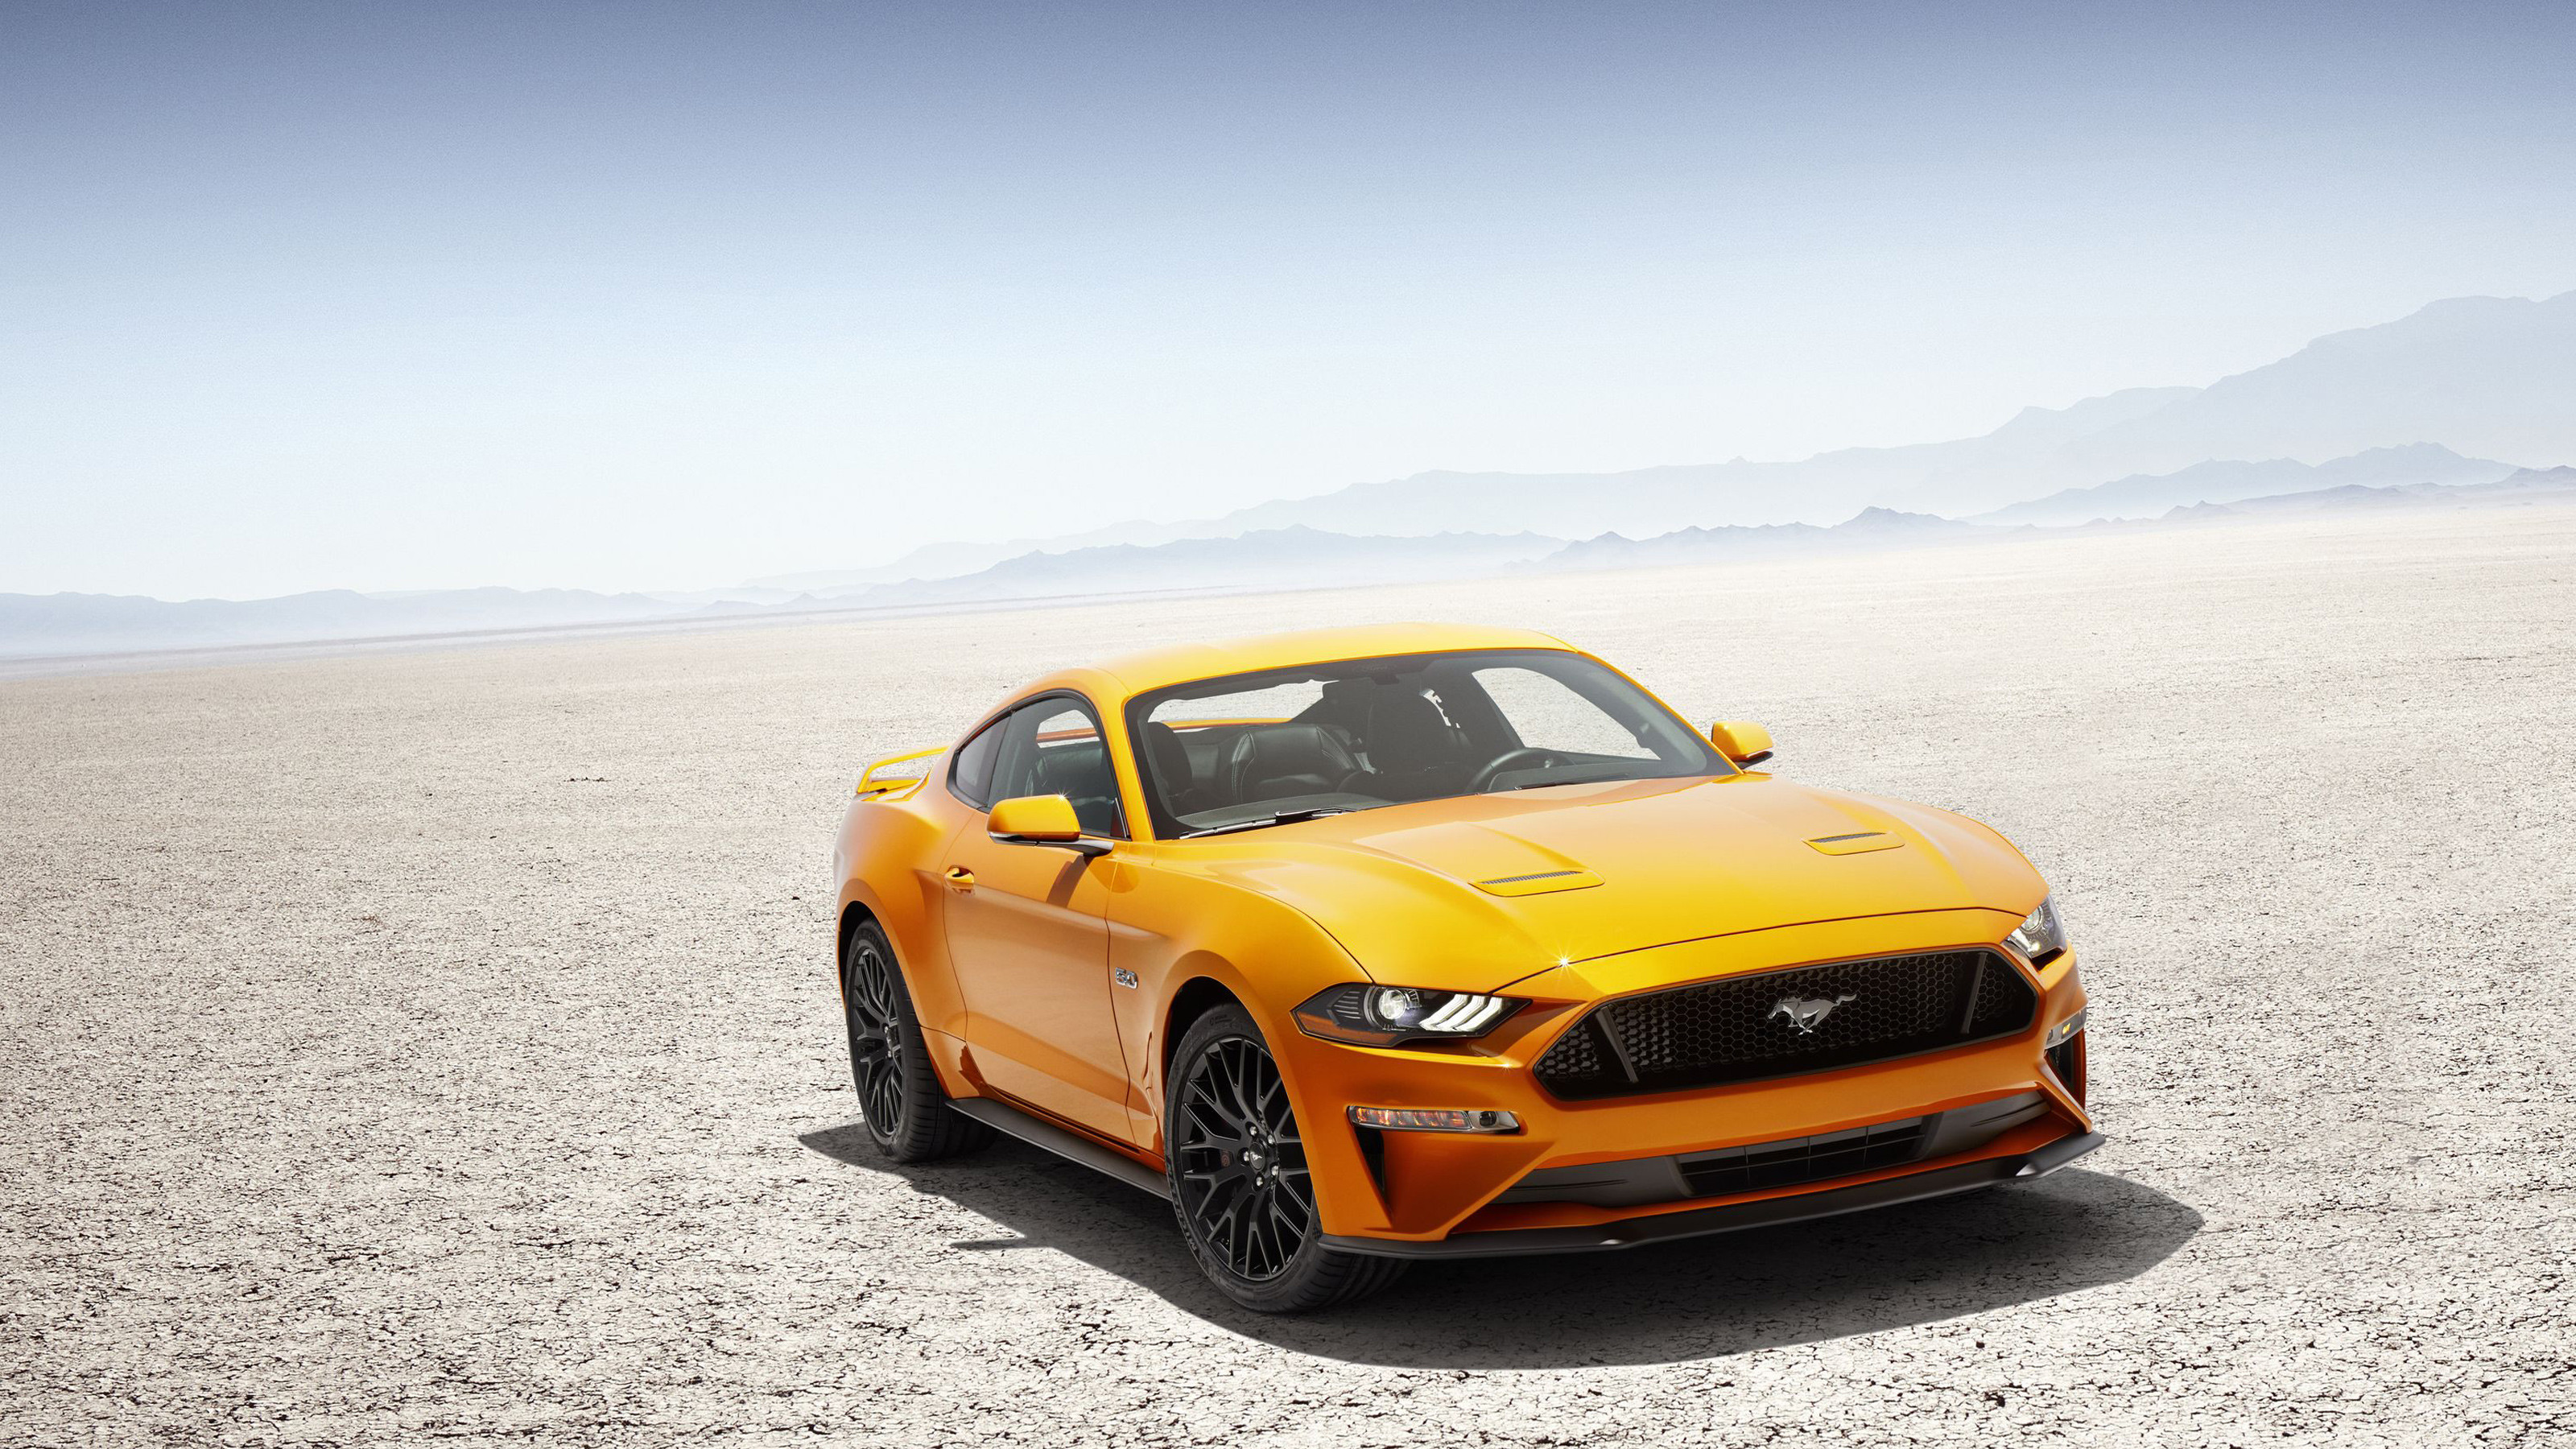 3200x1800 2018 Ford Mustang V8 GT